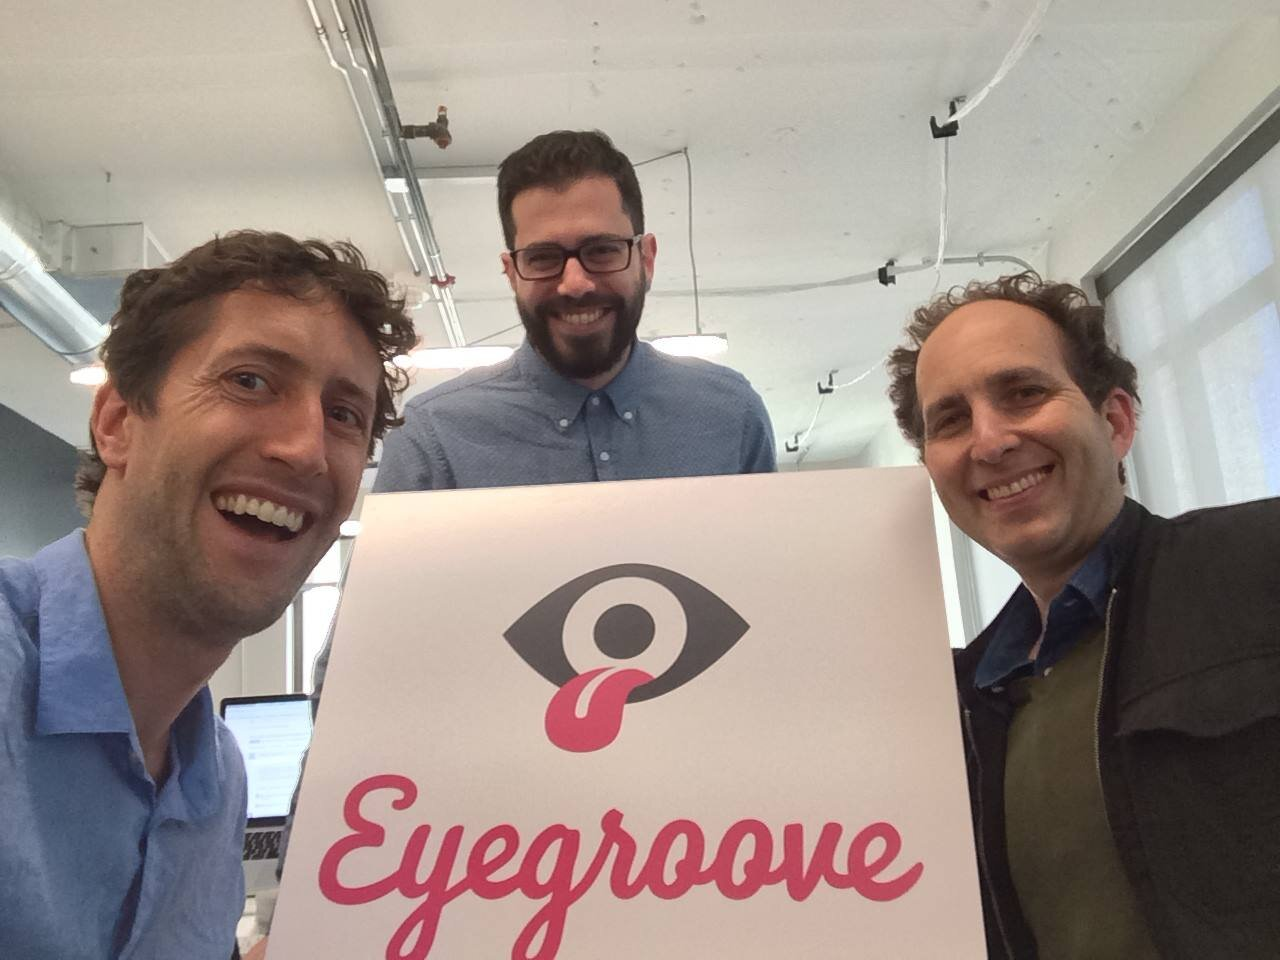 Eyegroove when we were three people (Graham McDermott, Jesse Fulton, Scott Snibbe).